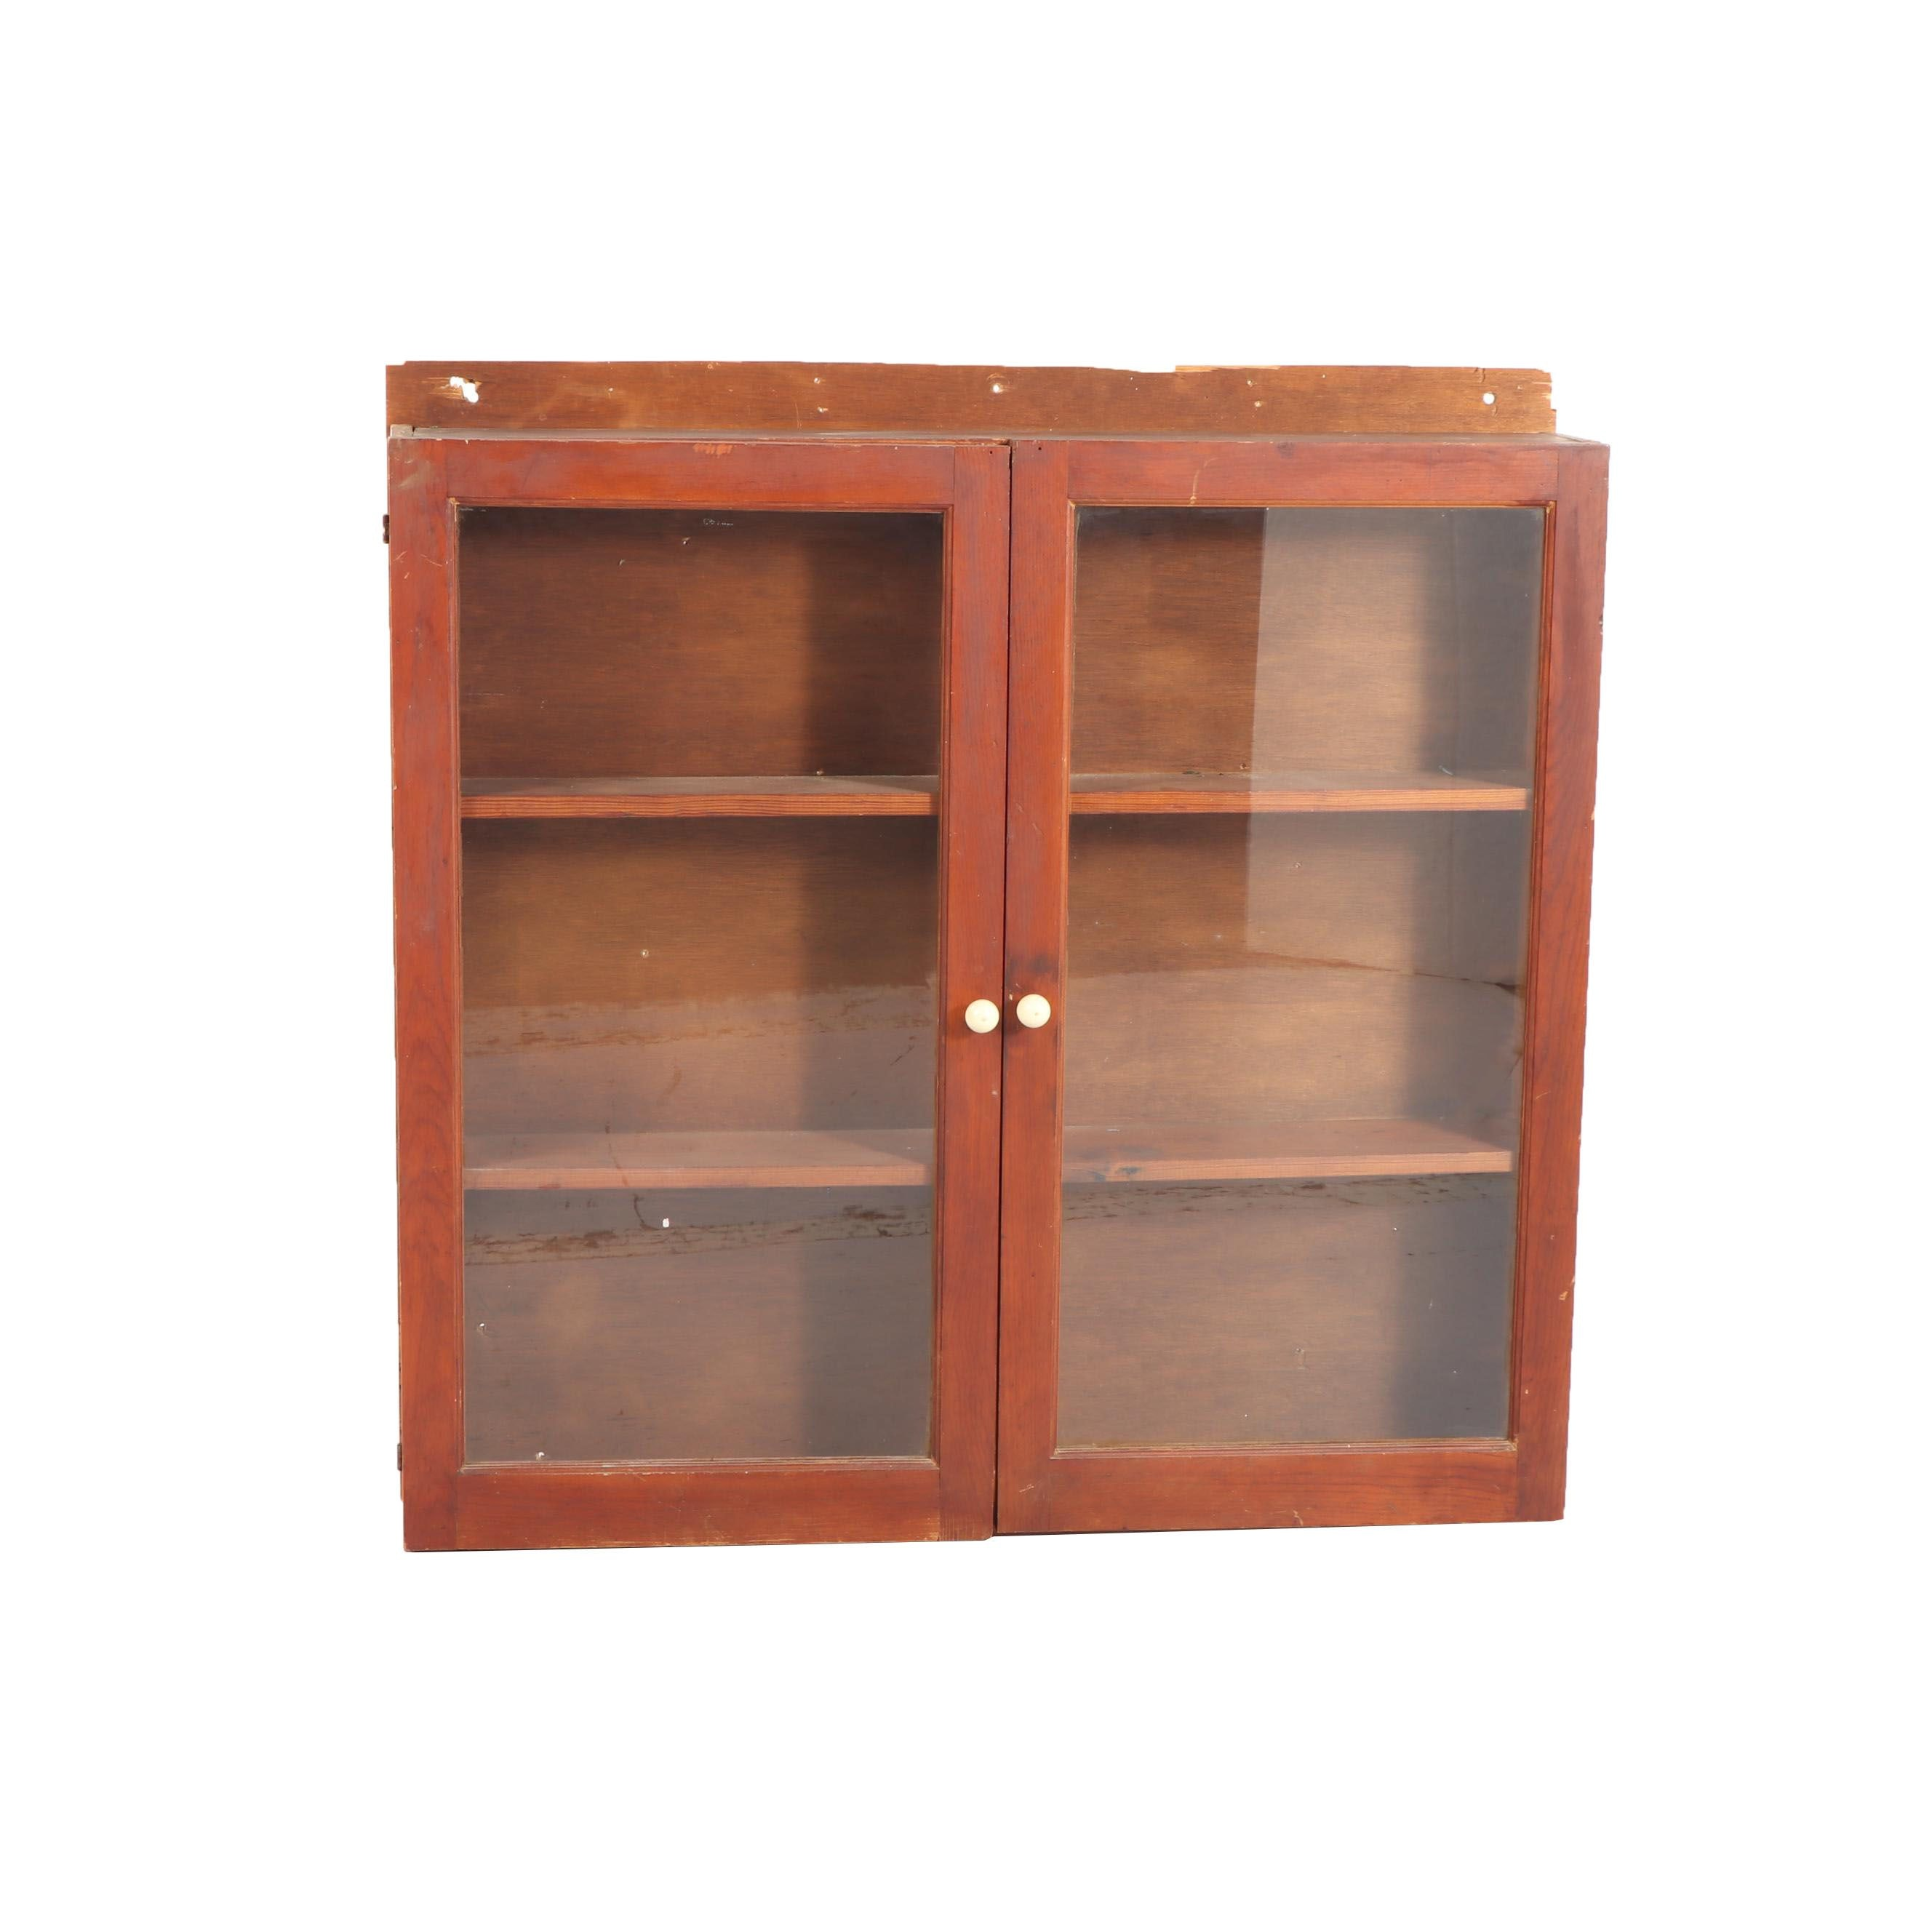 Mixed Wood Wall Mount Cabinet, Mid 20th Century